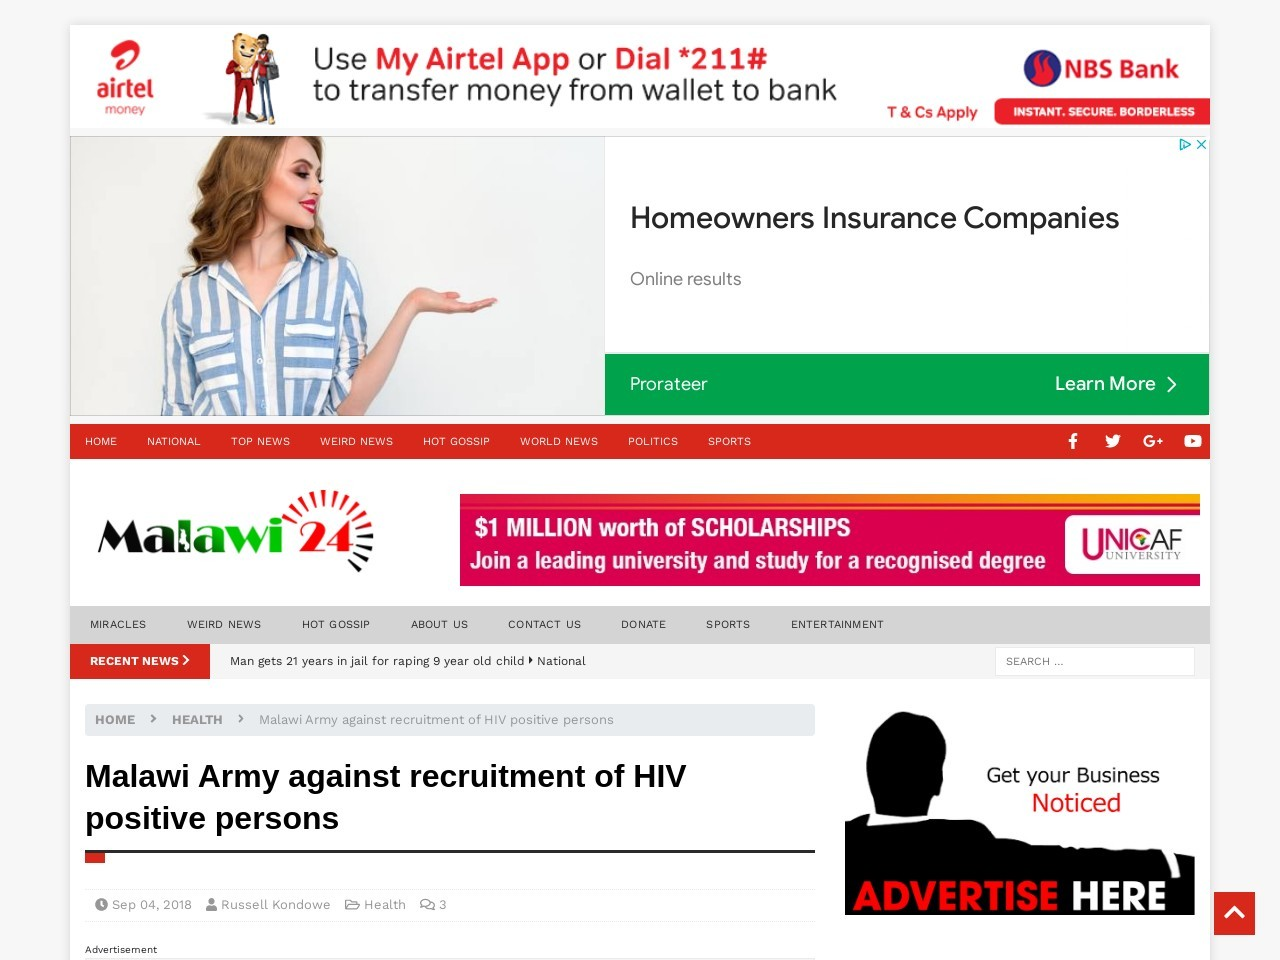 Malawi Army against recruitment of HIV positive persons